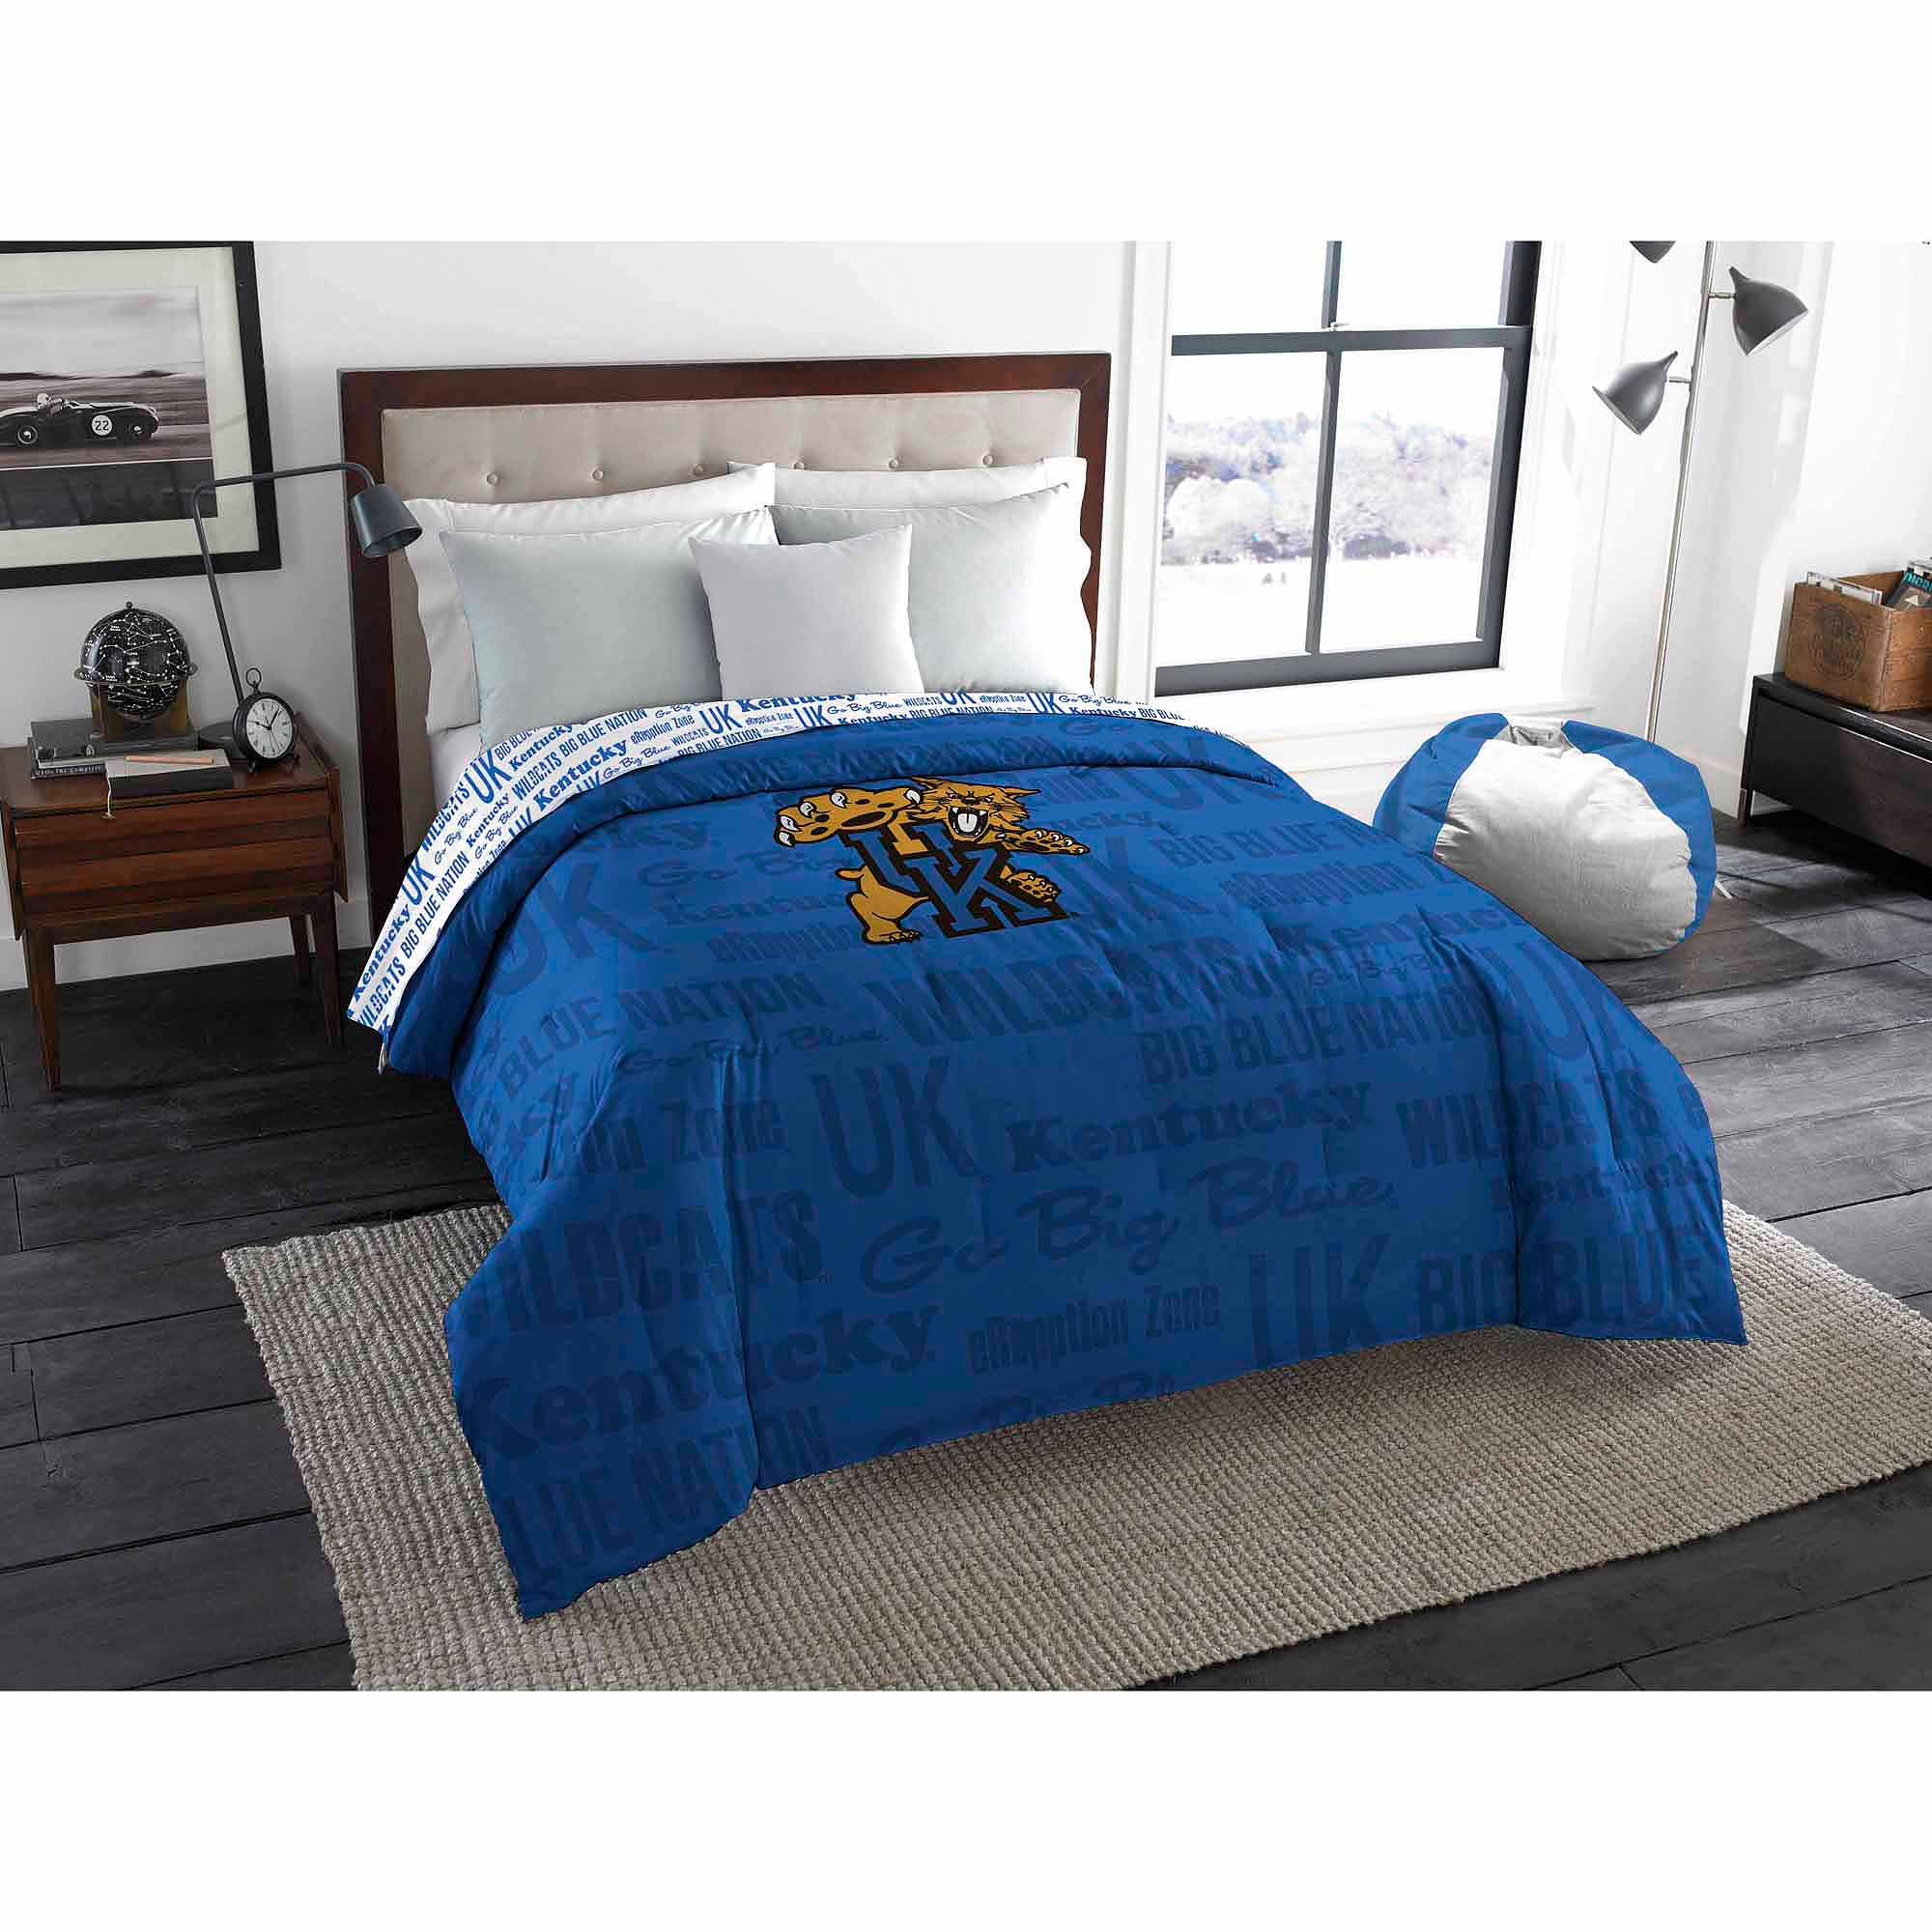 NCAA Kentucky Wildcats Twin/Full Bedding Comforter